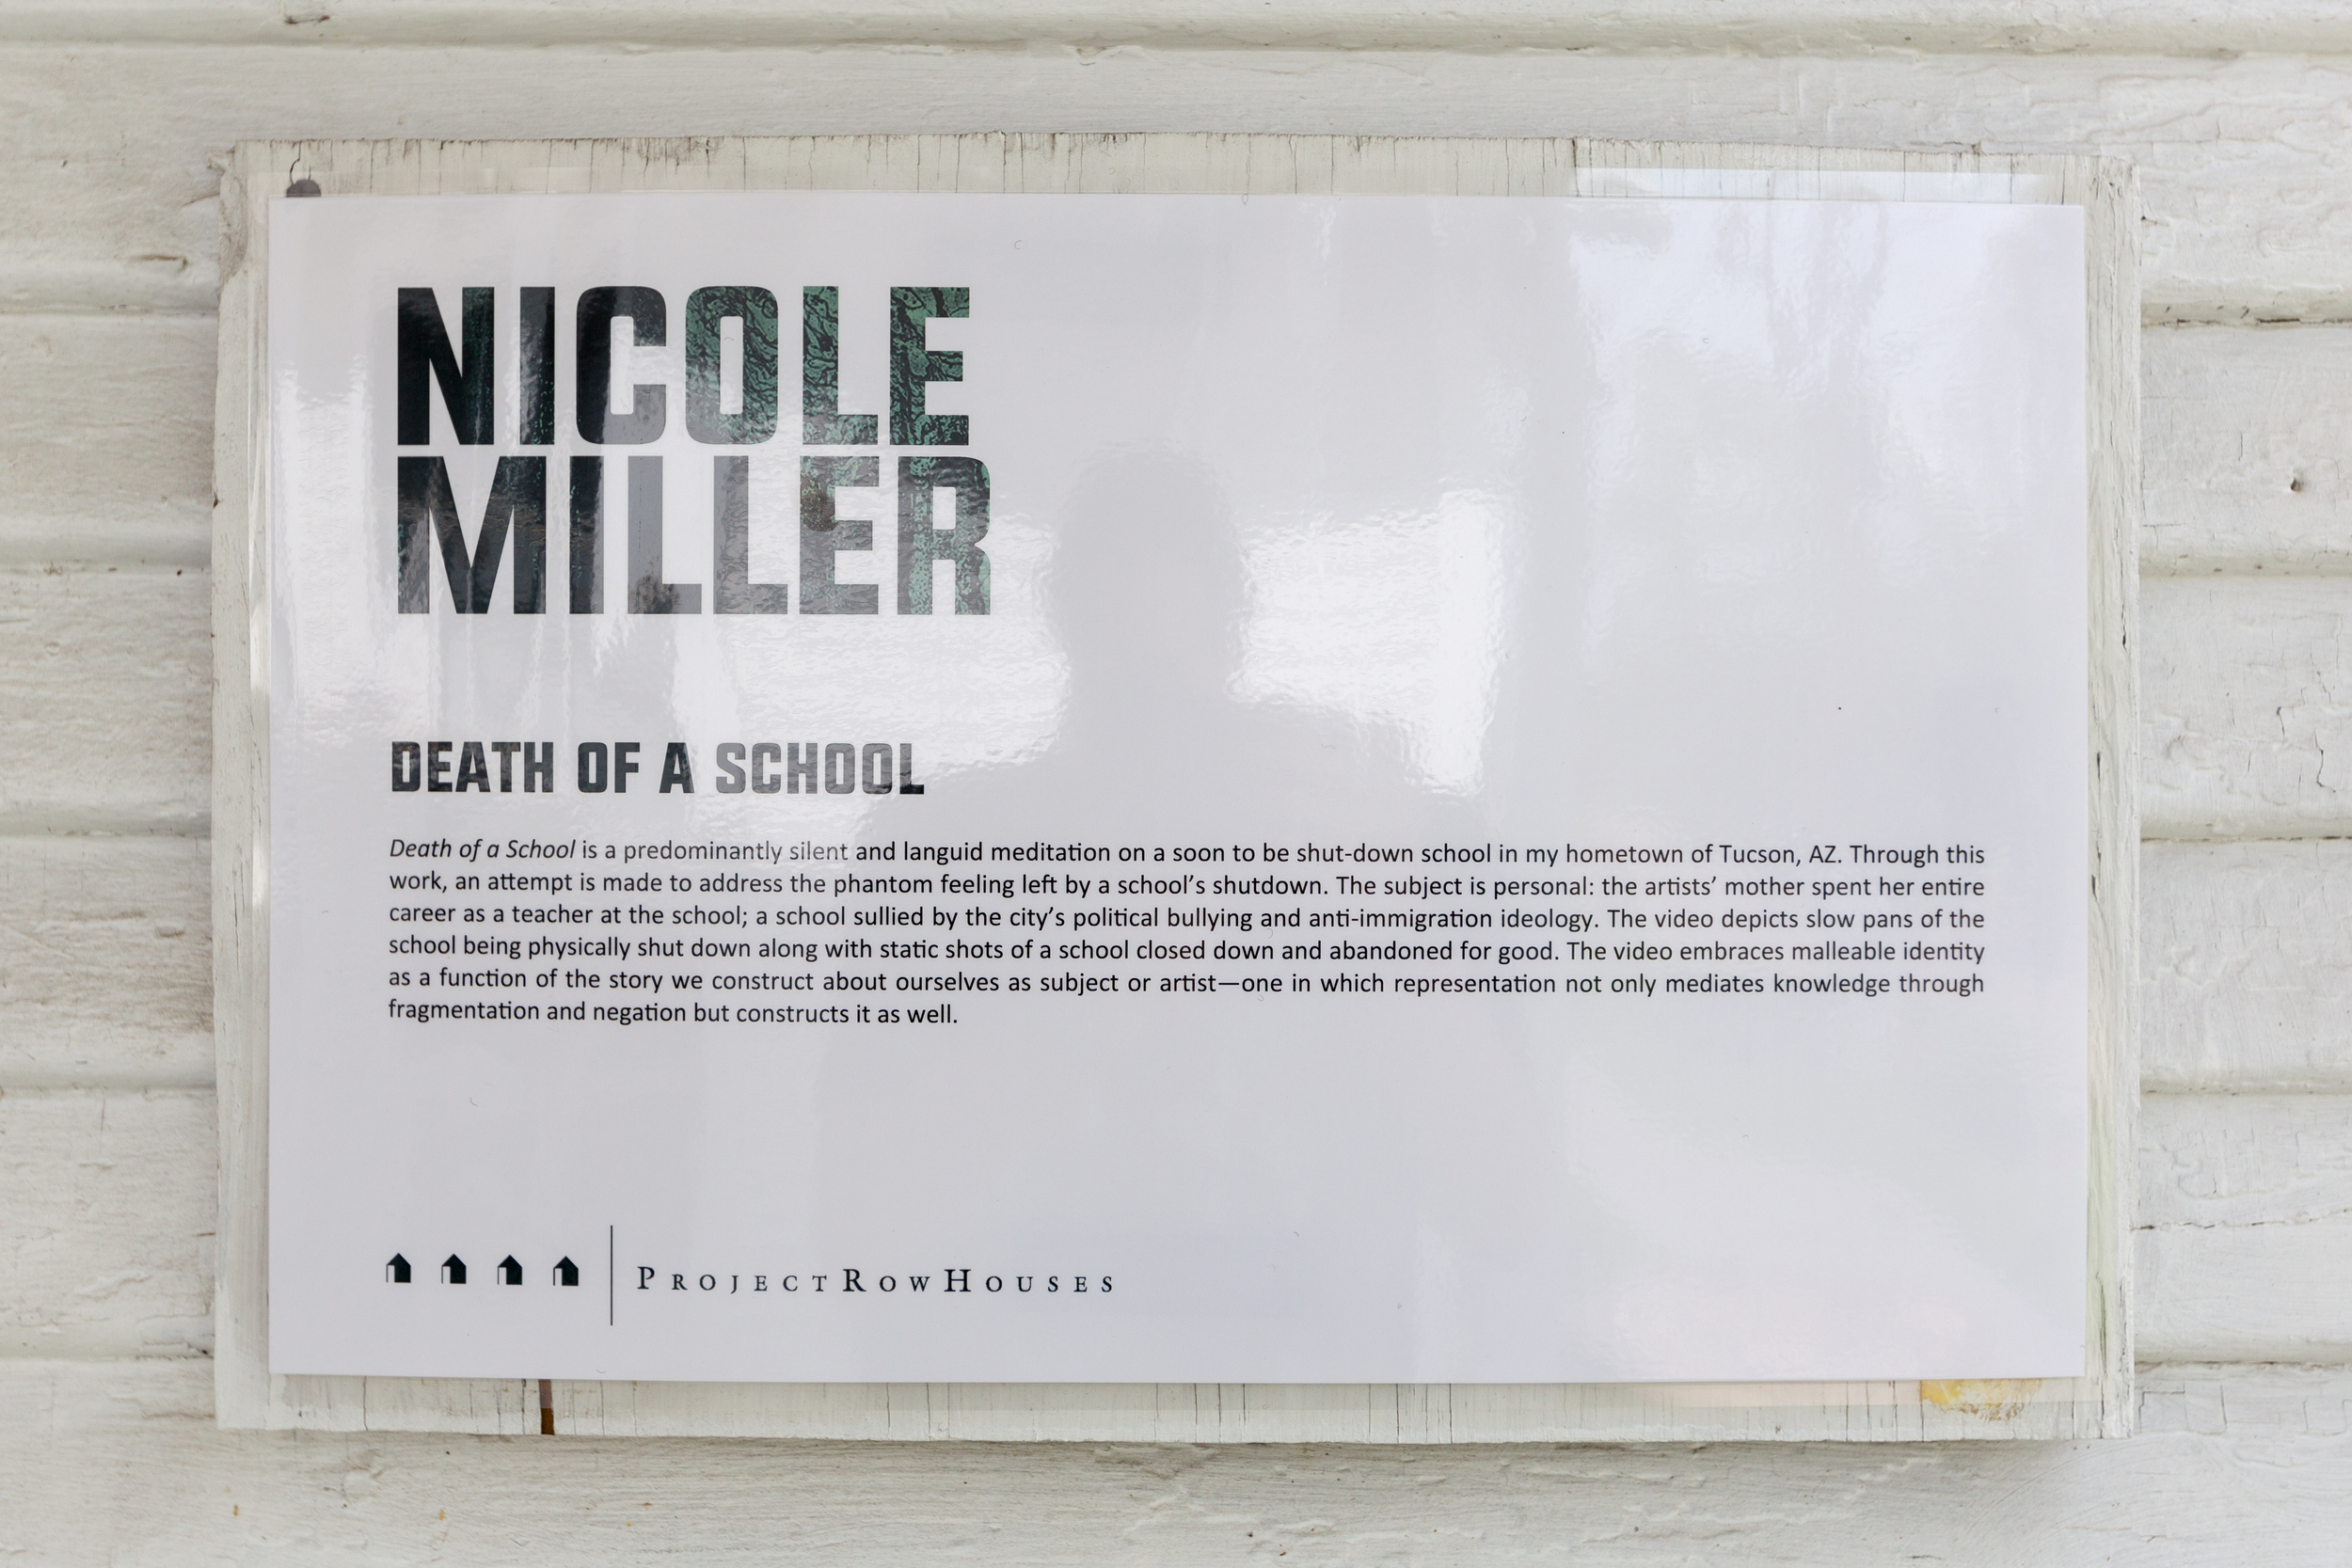 Nicole Miller, Death of a School